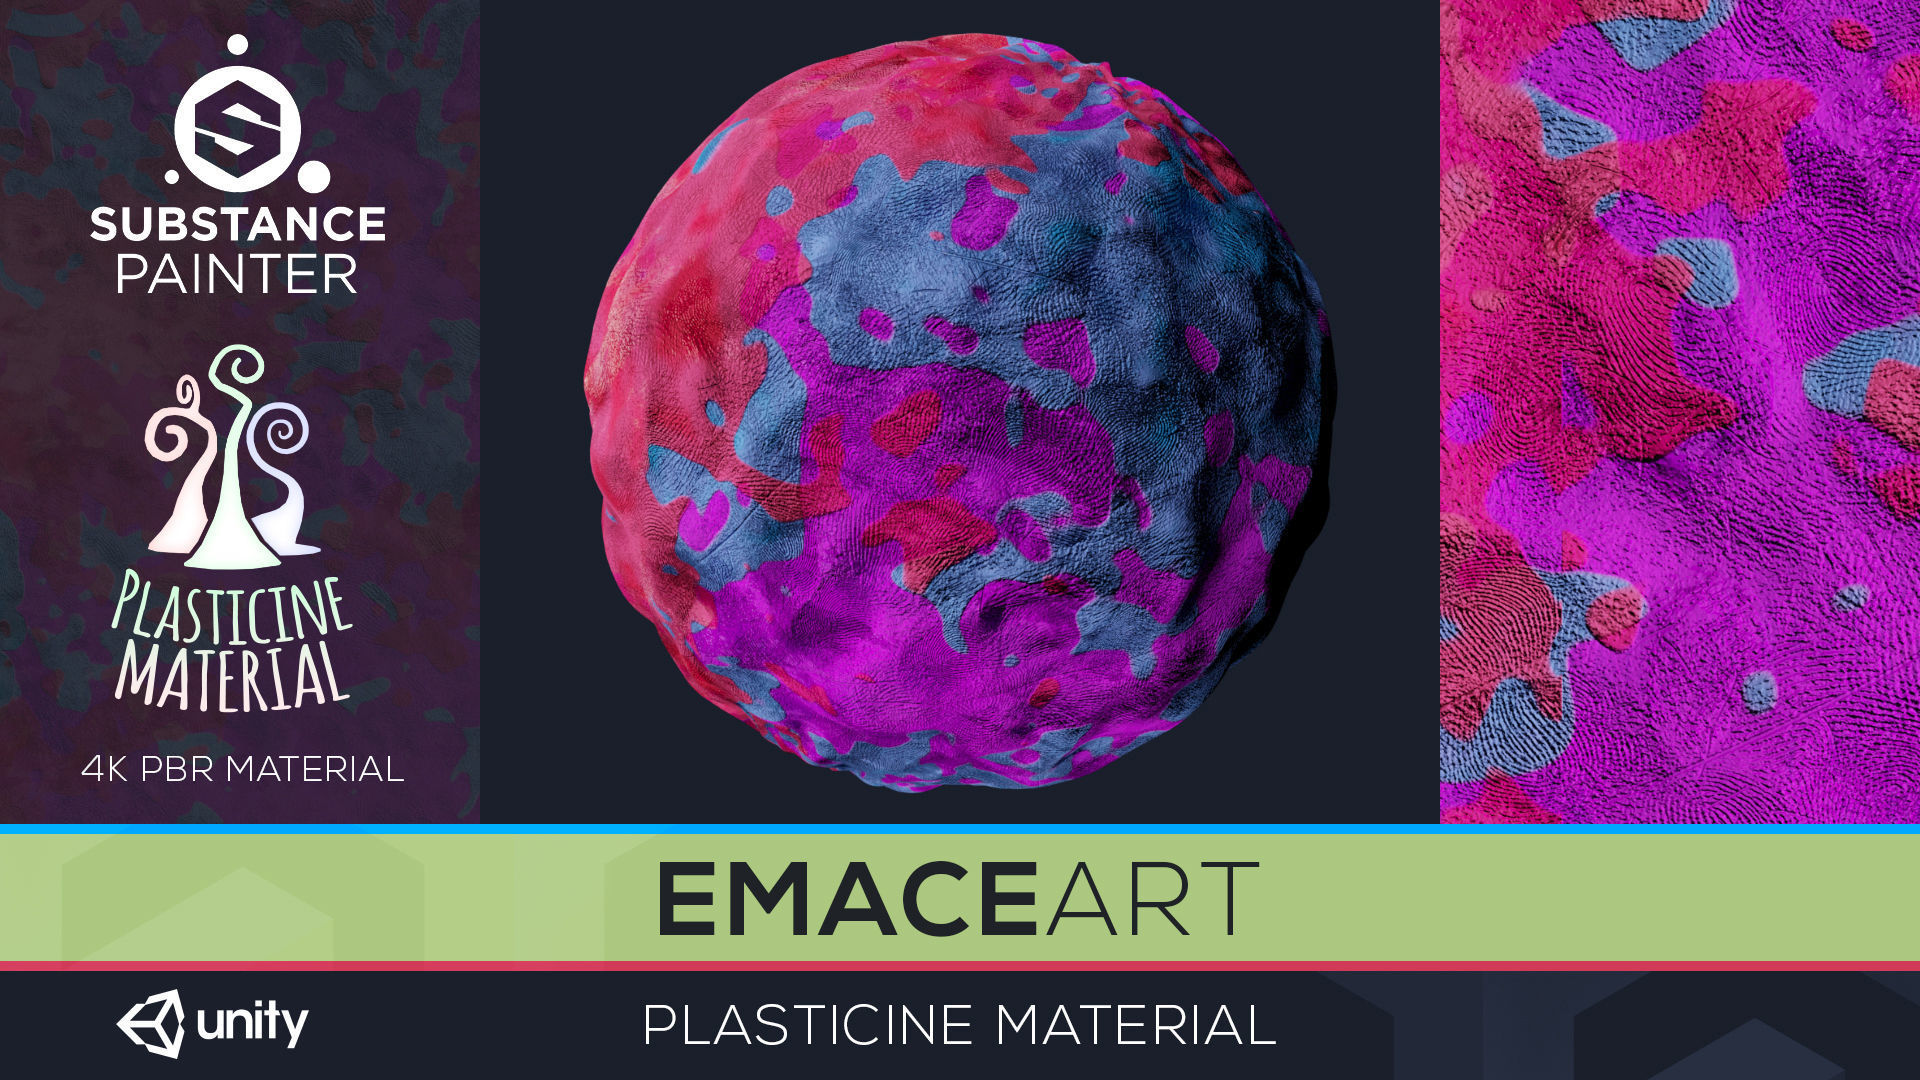 PBR Toon Plasticine sbsar Material 4 Substance Unity Material | Texture